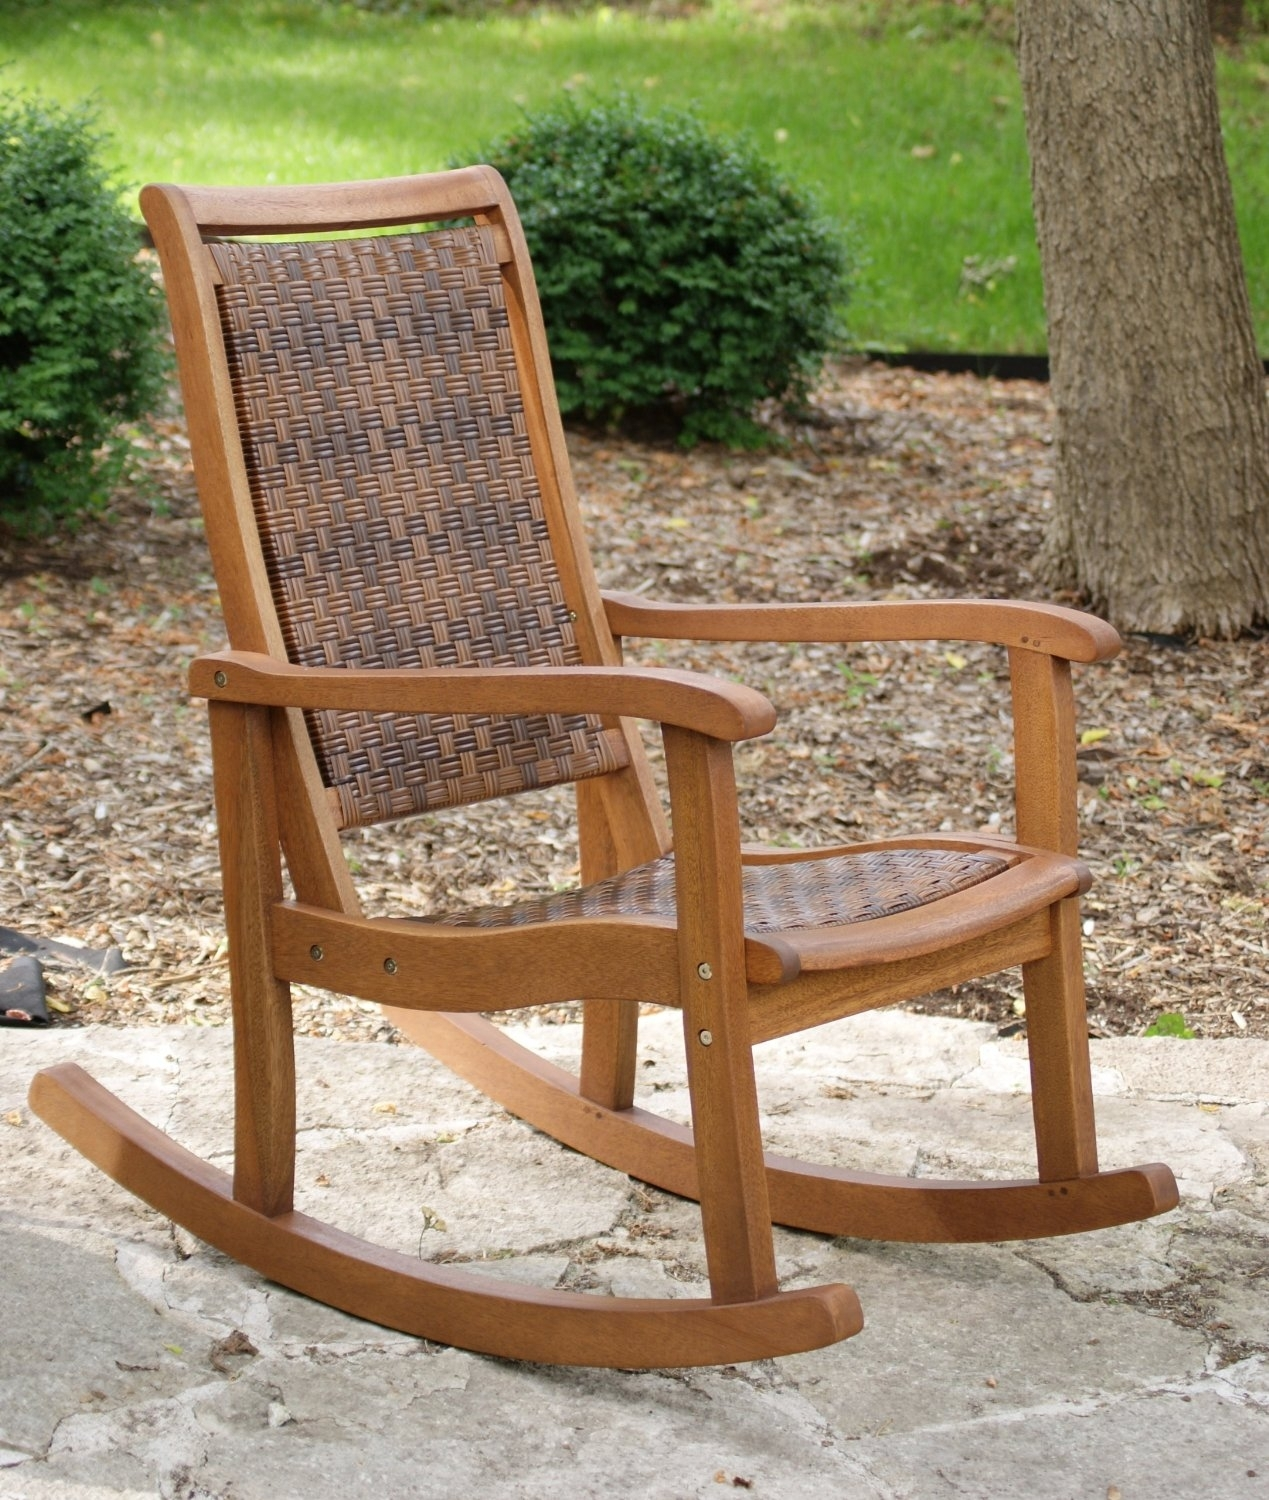 Great Rocking Patio Chairs Outdoor Wicker Rocking Chairs Patio Pertaining To Rocking Chair Outdoor Wooden (View 8 of 15)